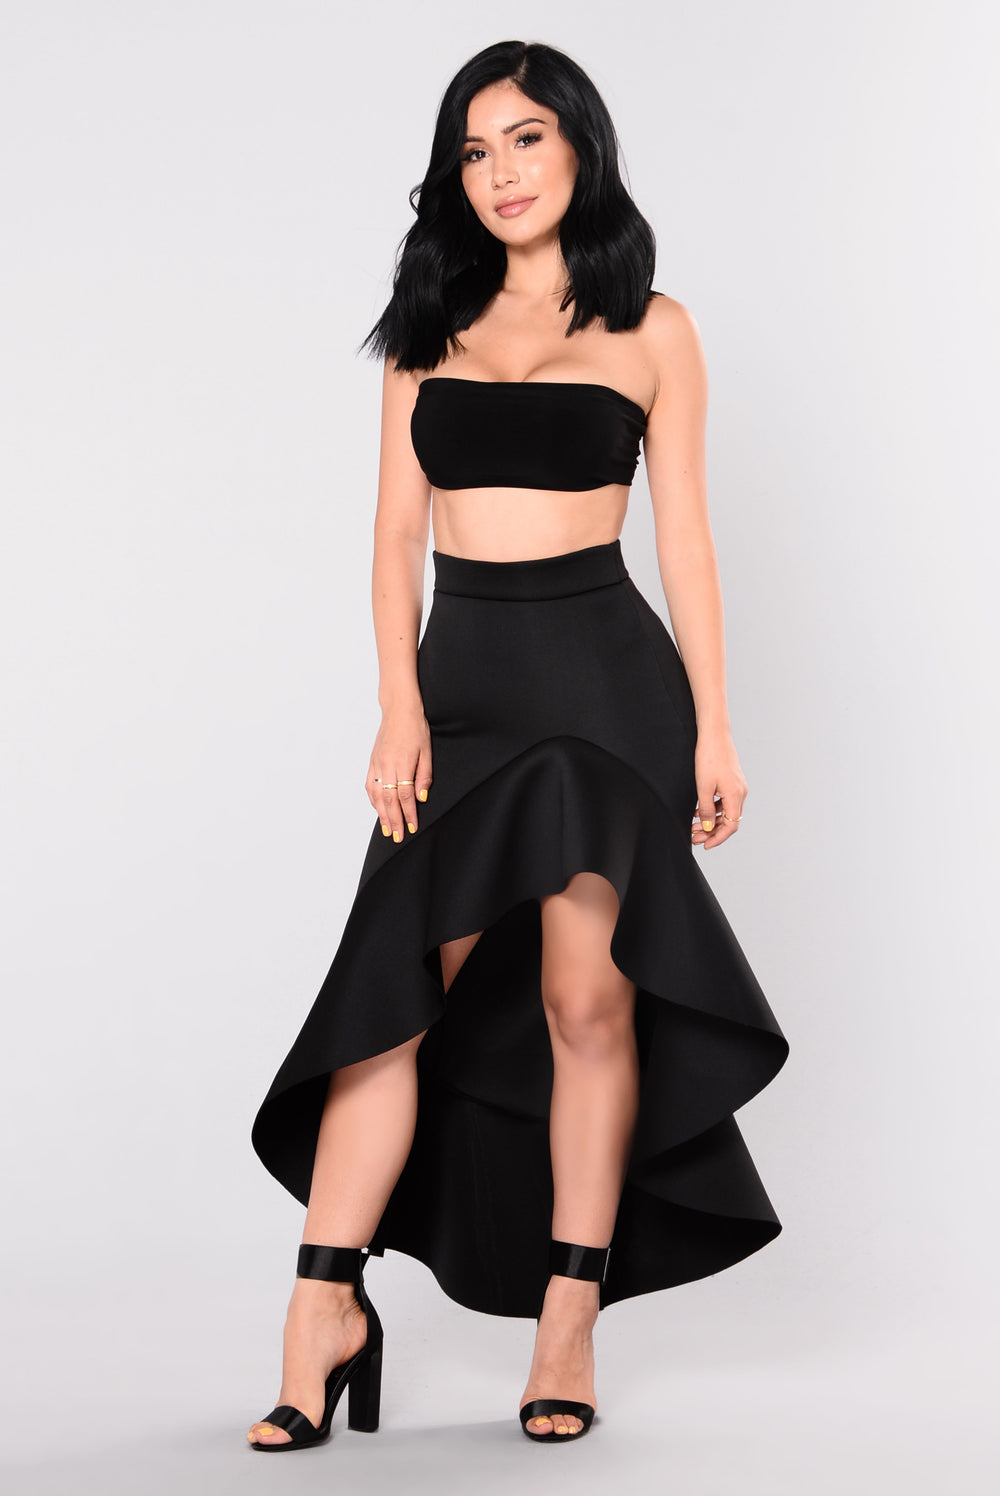 Valentia Ruffle Skirt - Black